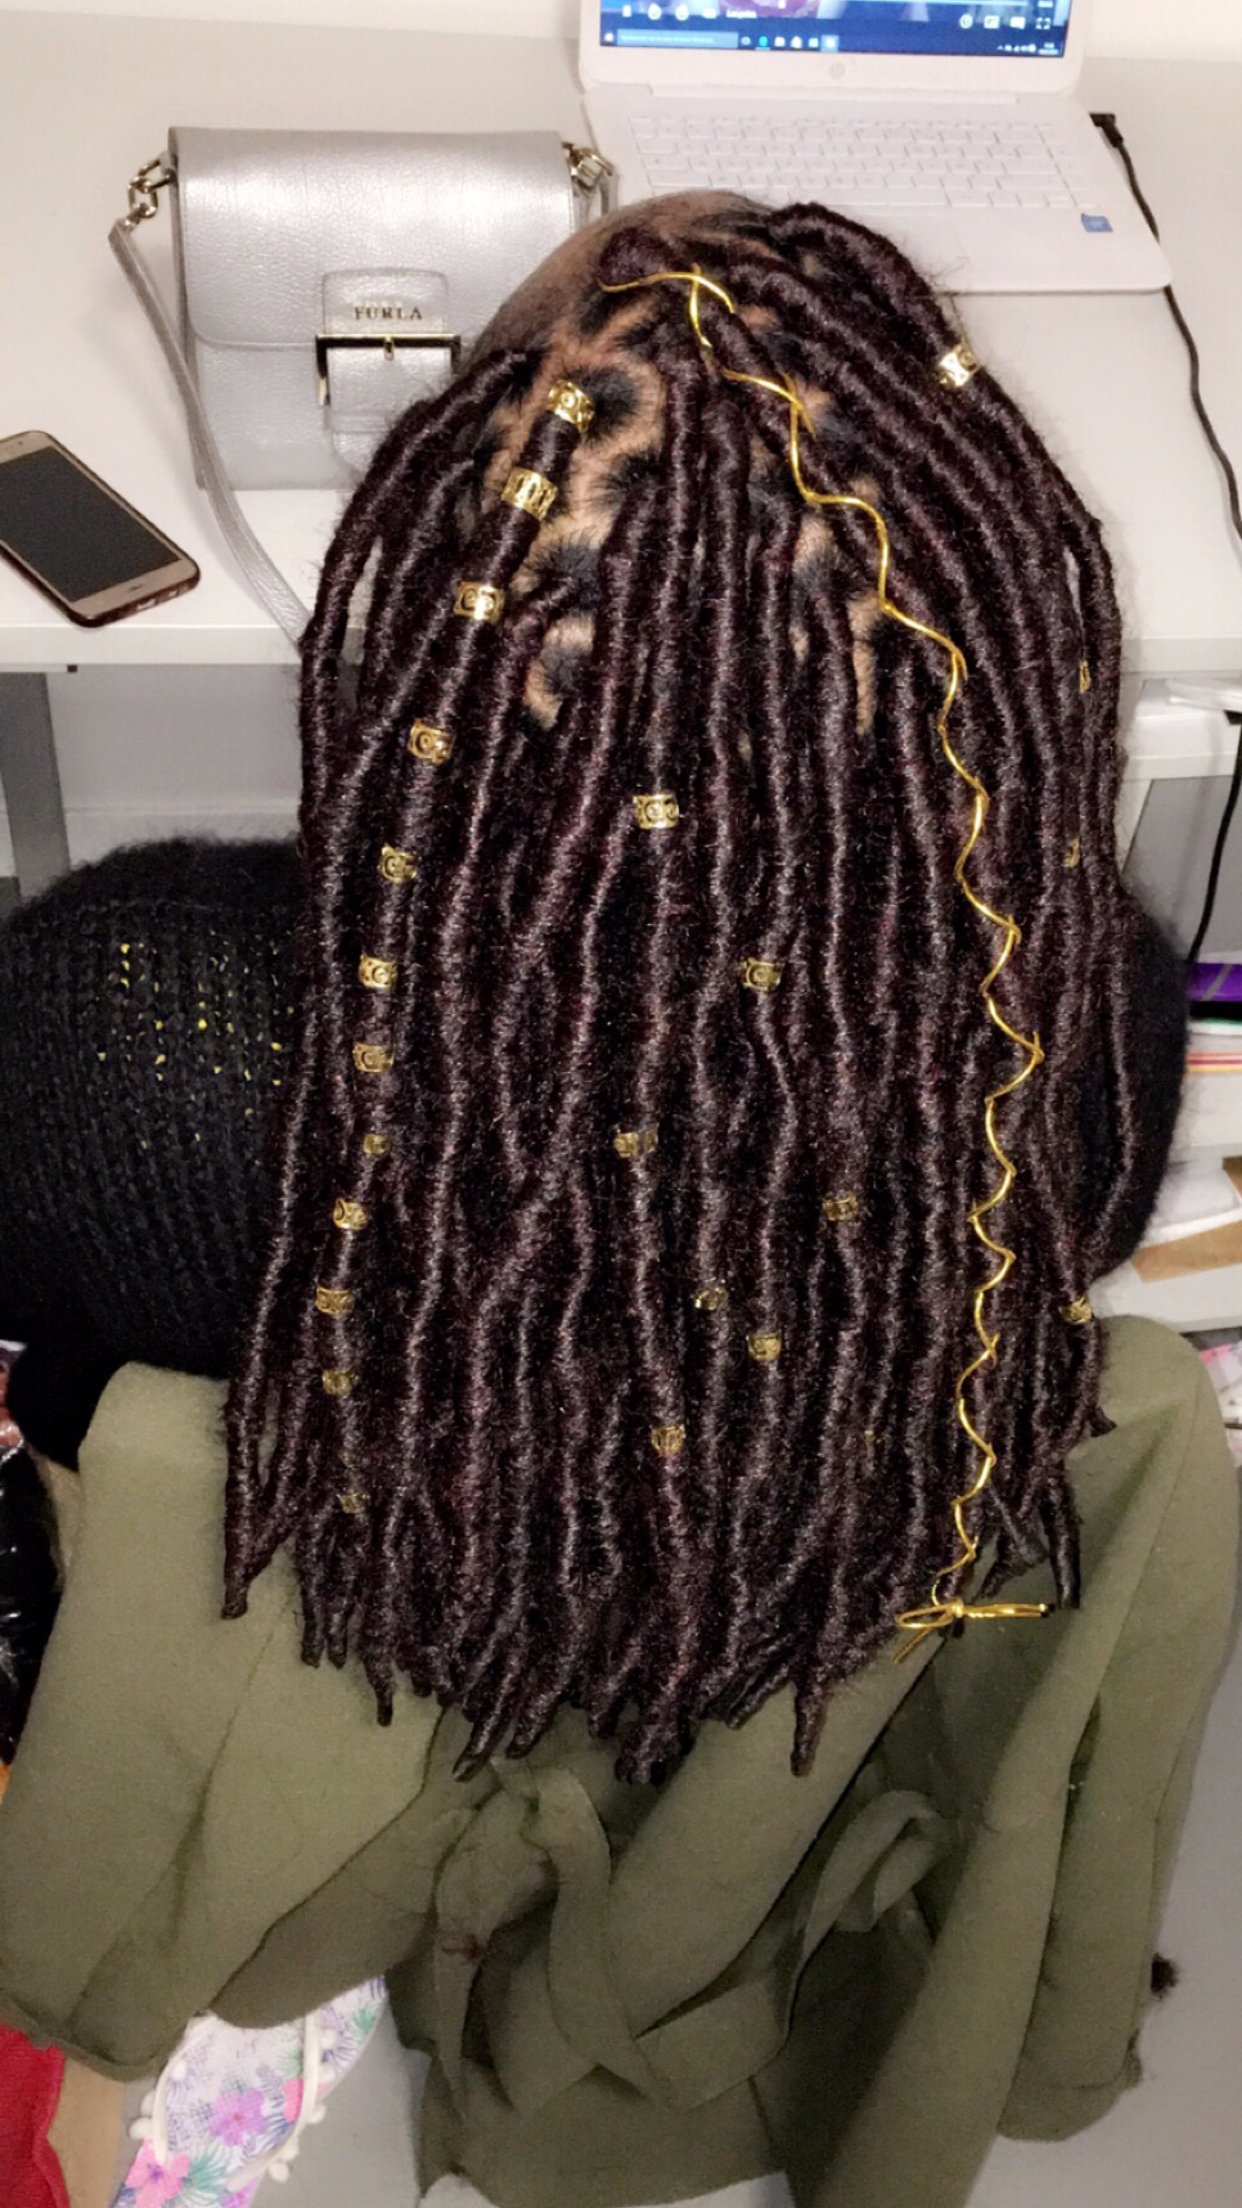 salon de coiffure afro tresse tresses box braids crochet braids vanilles tissages paris 75 77 78 91 92 93 94 95 BAJNQNCQ